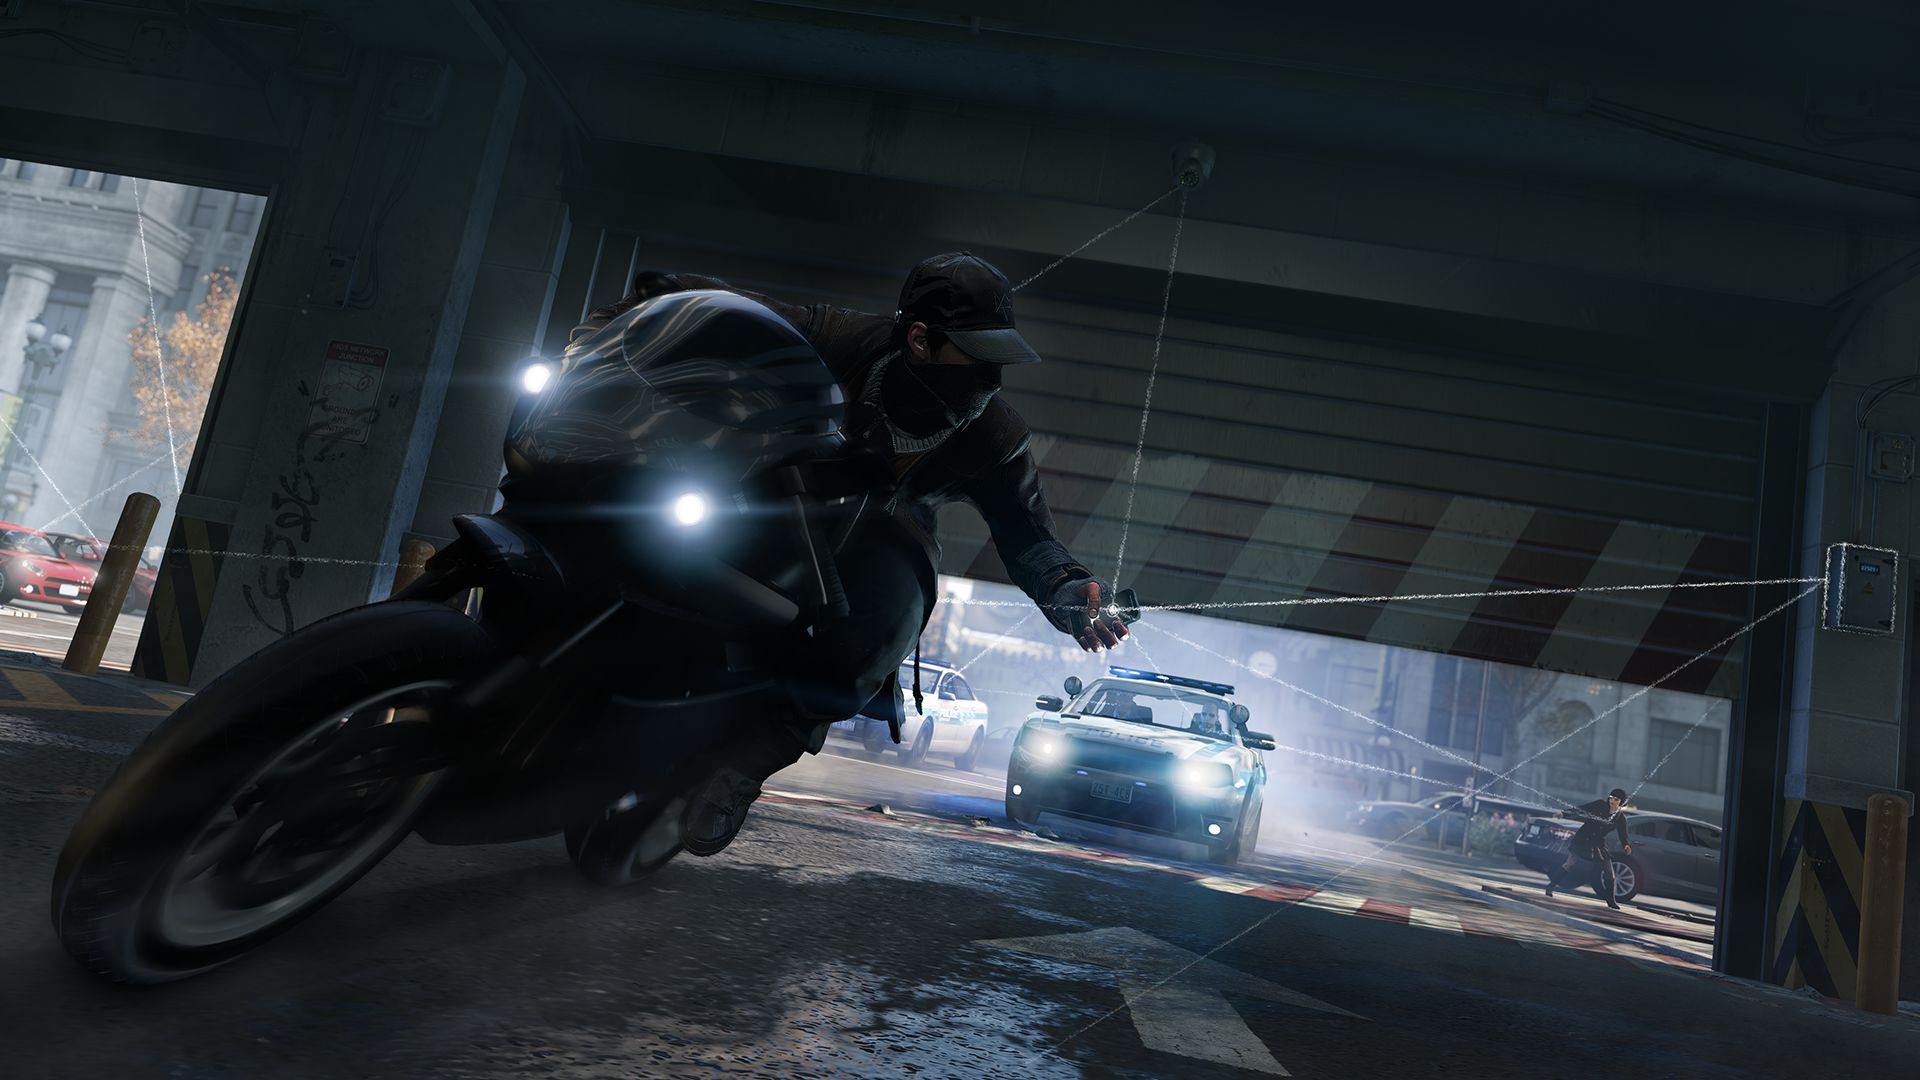 Third week at number one for Watch Dogs, as Mario Kart 8 rises